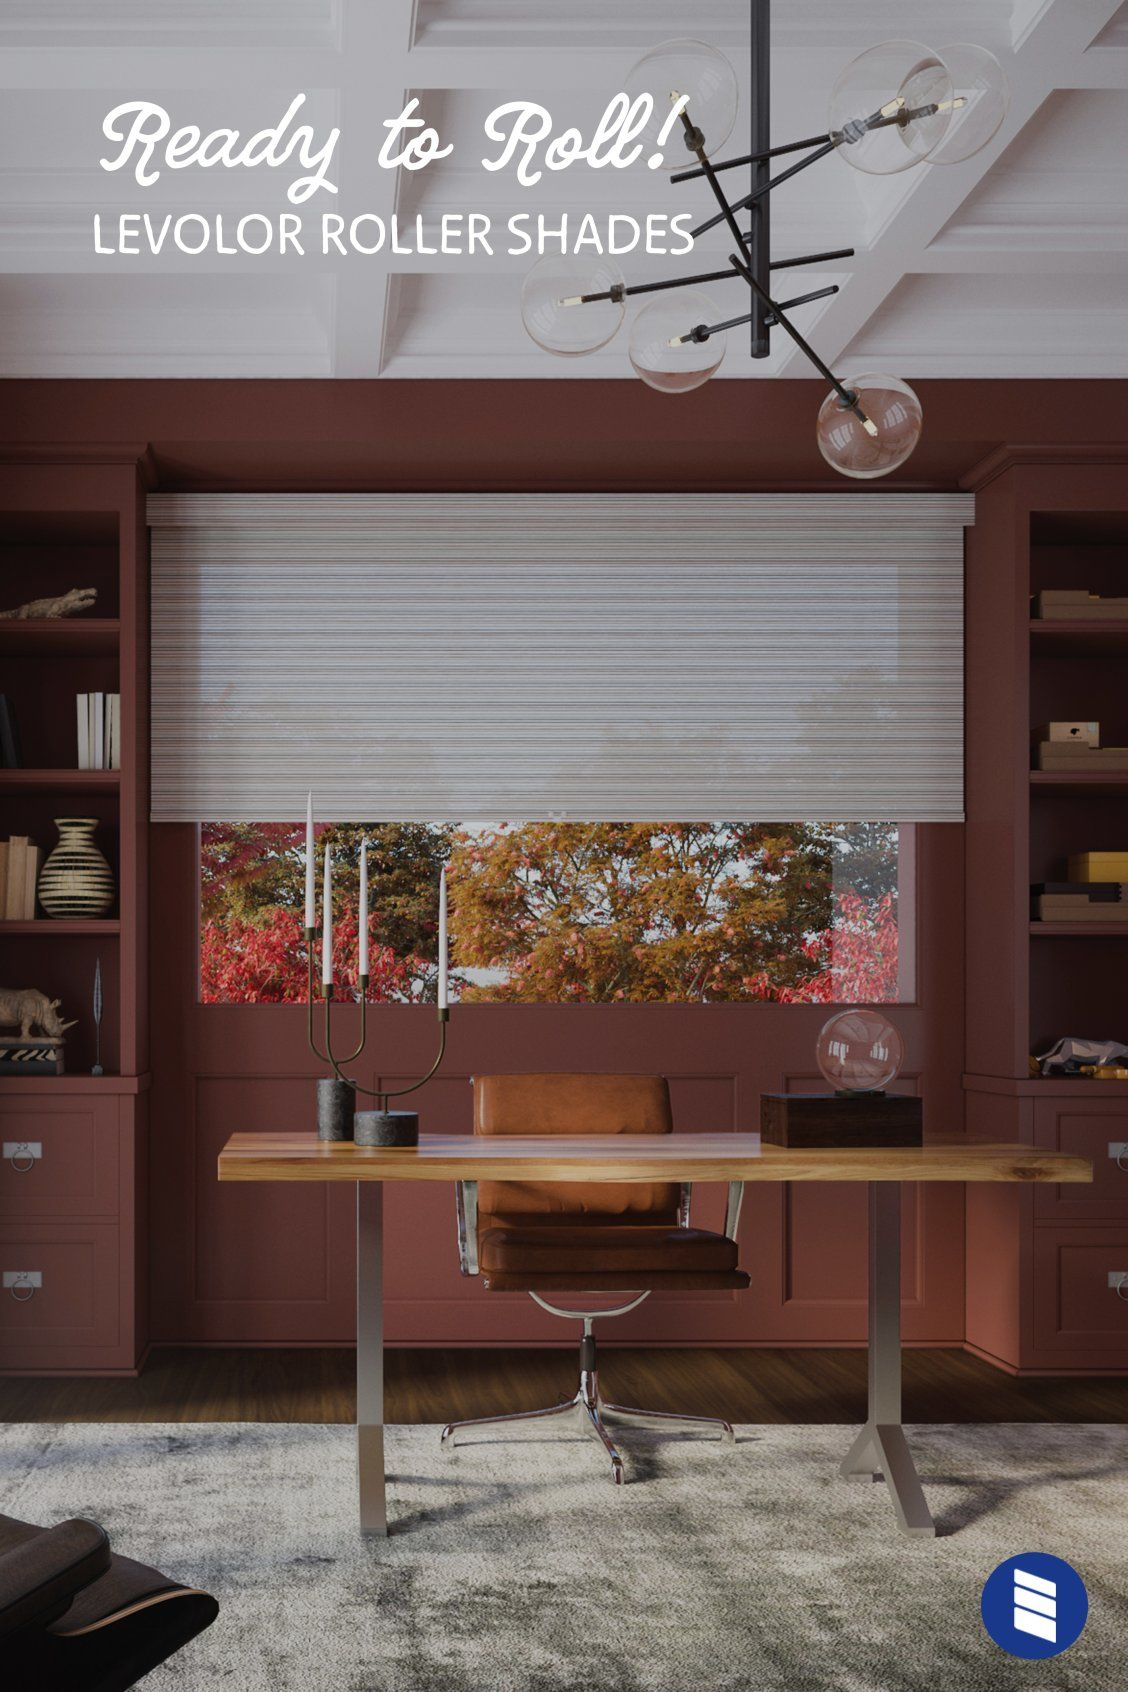 Ready To Roll New Levolor Roller Shades Only At Blinds Com Blinds Com Roller Shades Custom Roller Shades Fabric Roller Shades